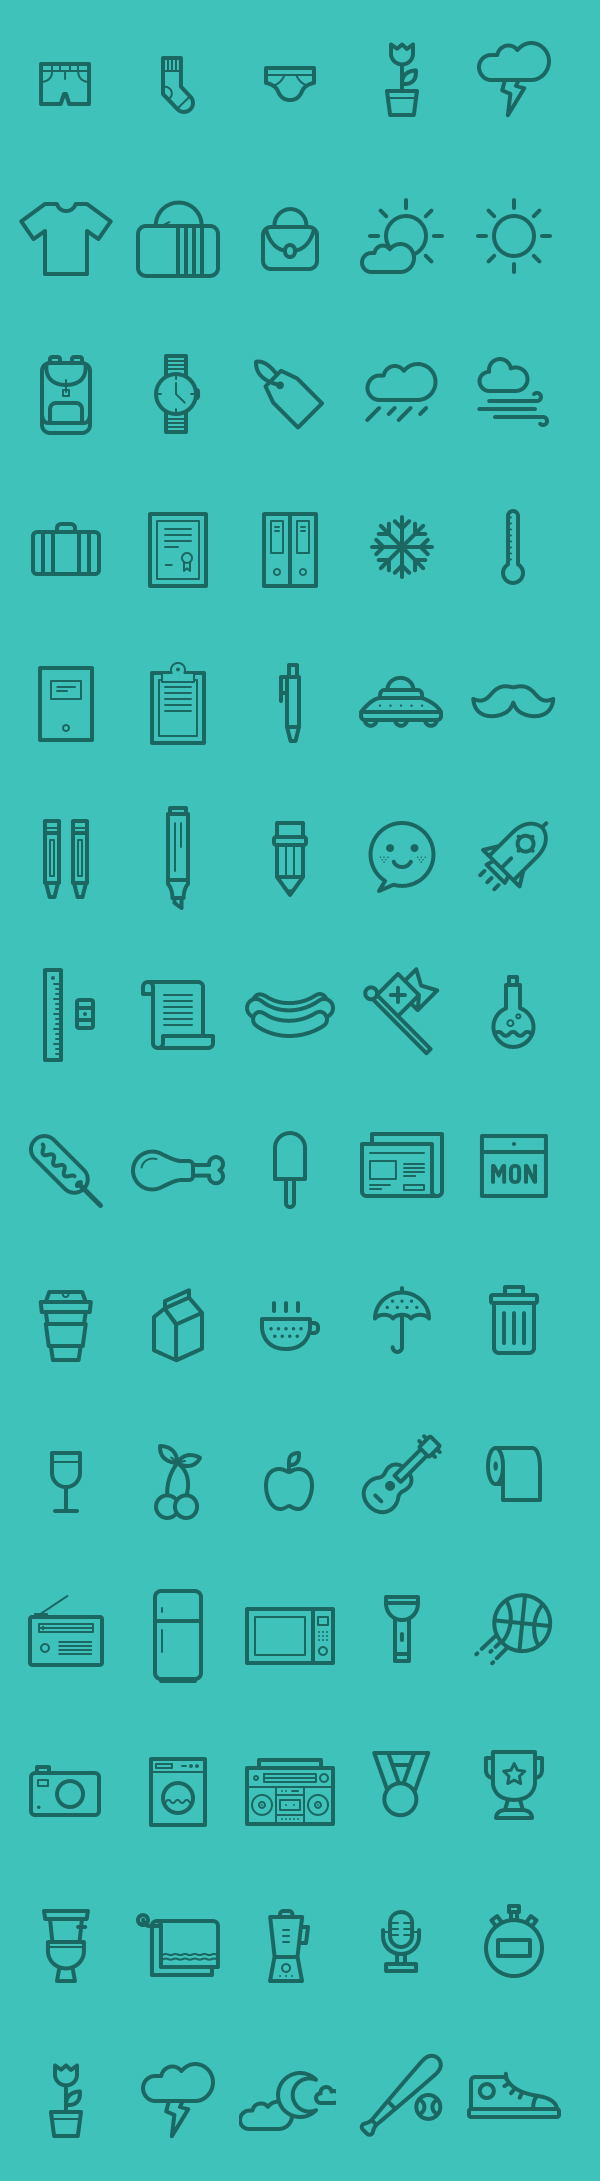 Medlee Iconset - AI EPS & PSD (80 Icons)